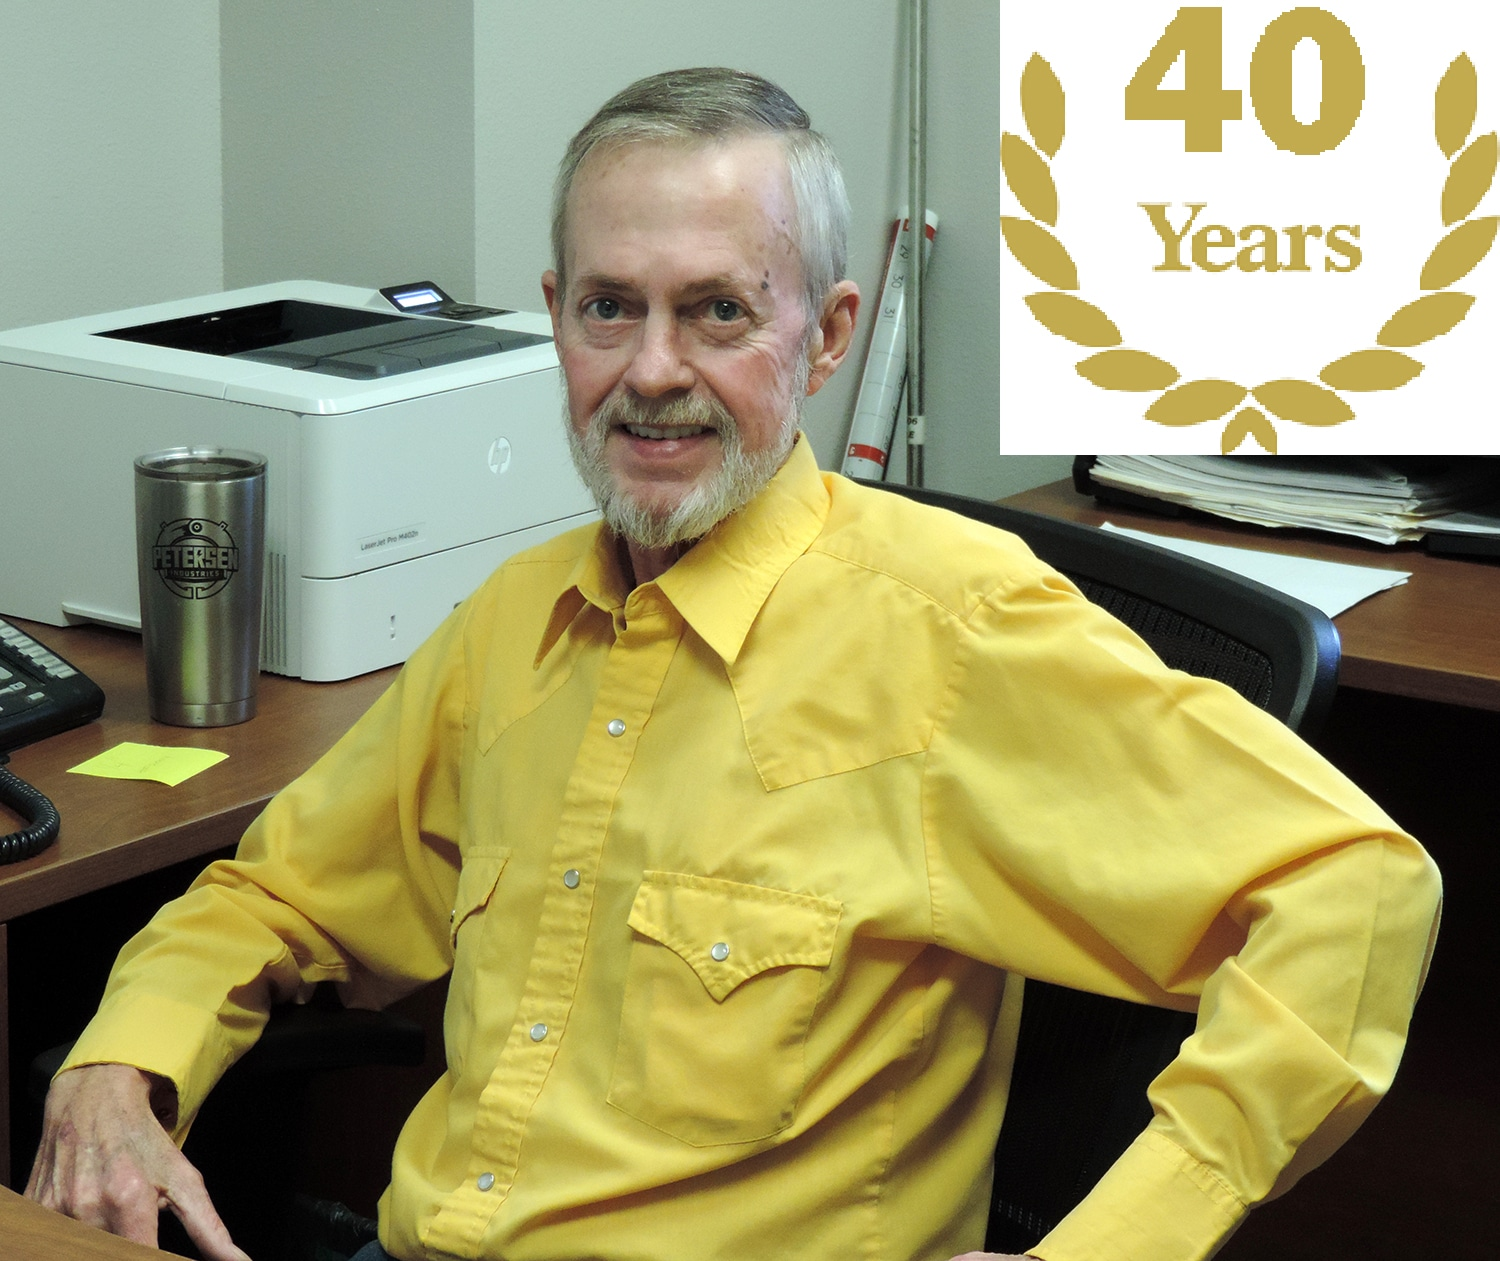 Jimmy Tillman Celebrating 40 Years at Our Company